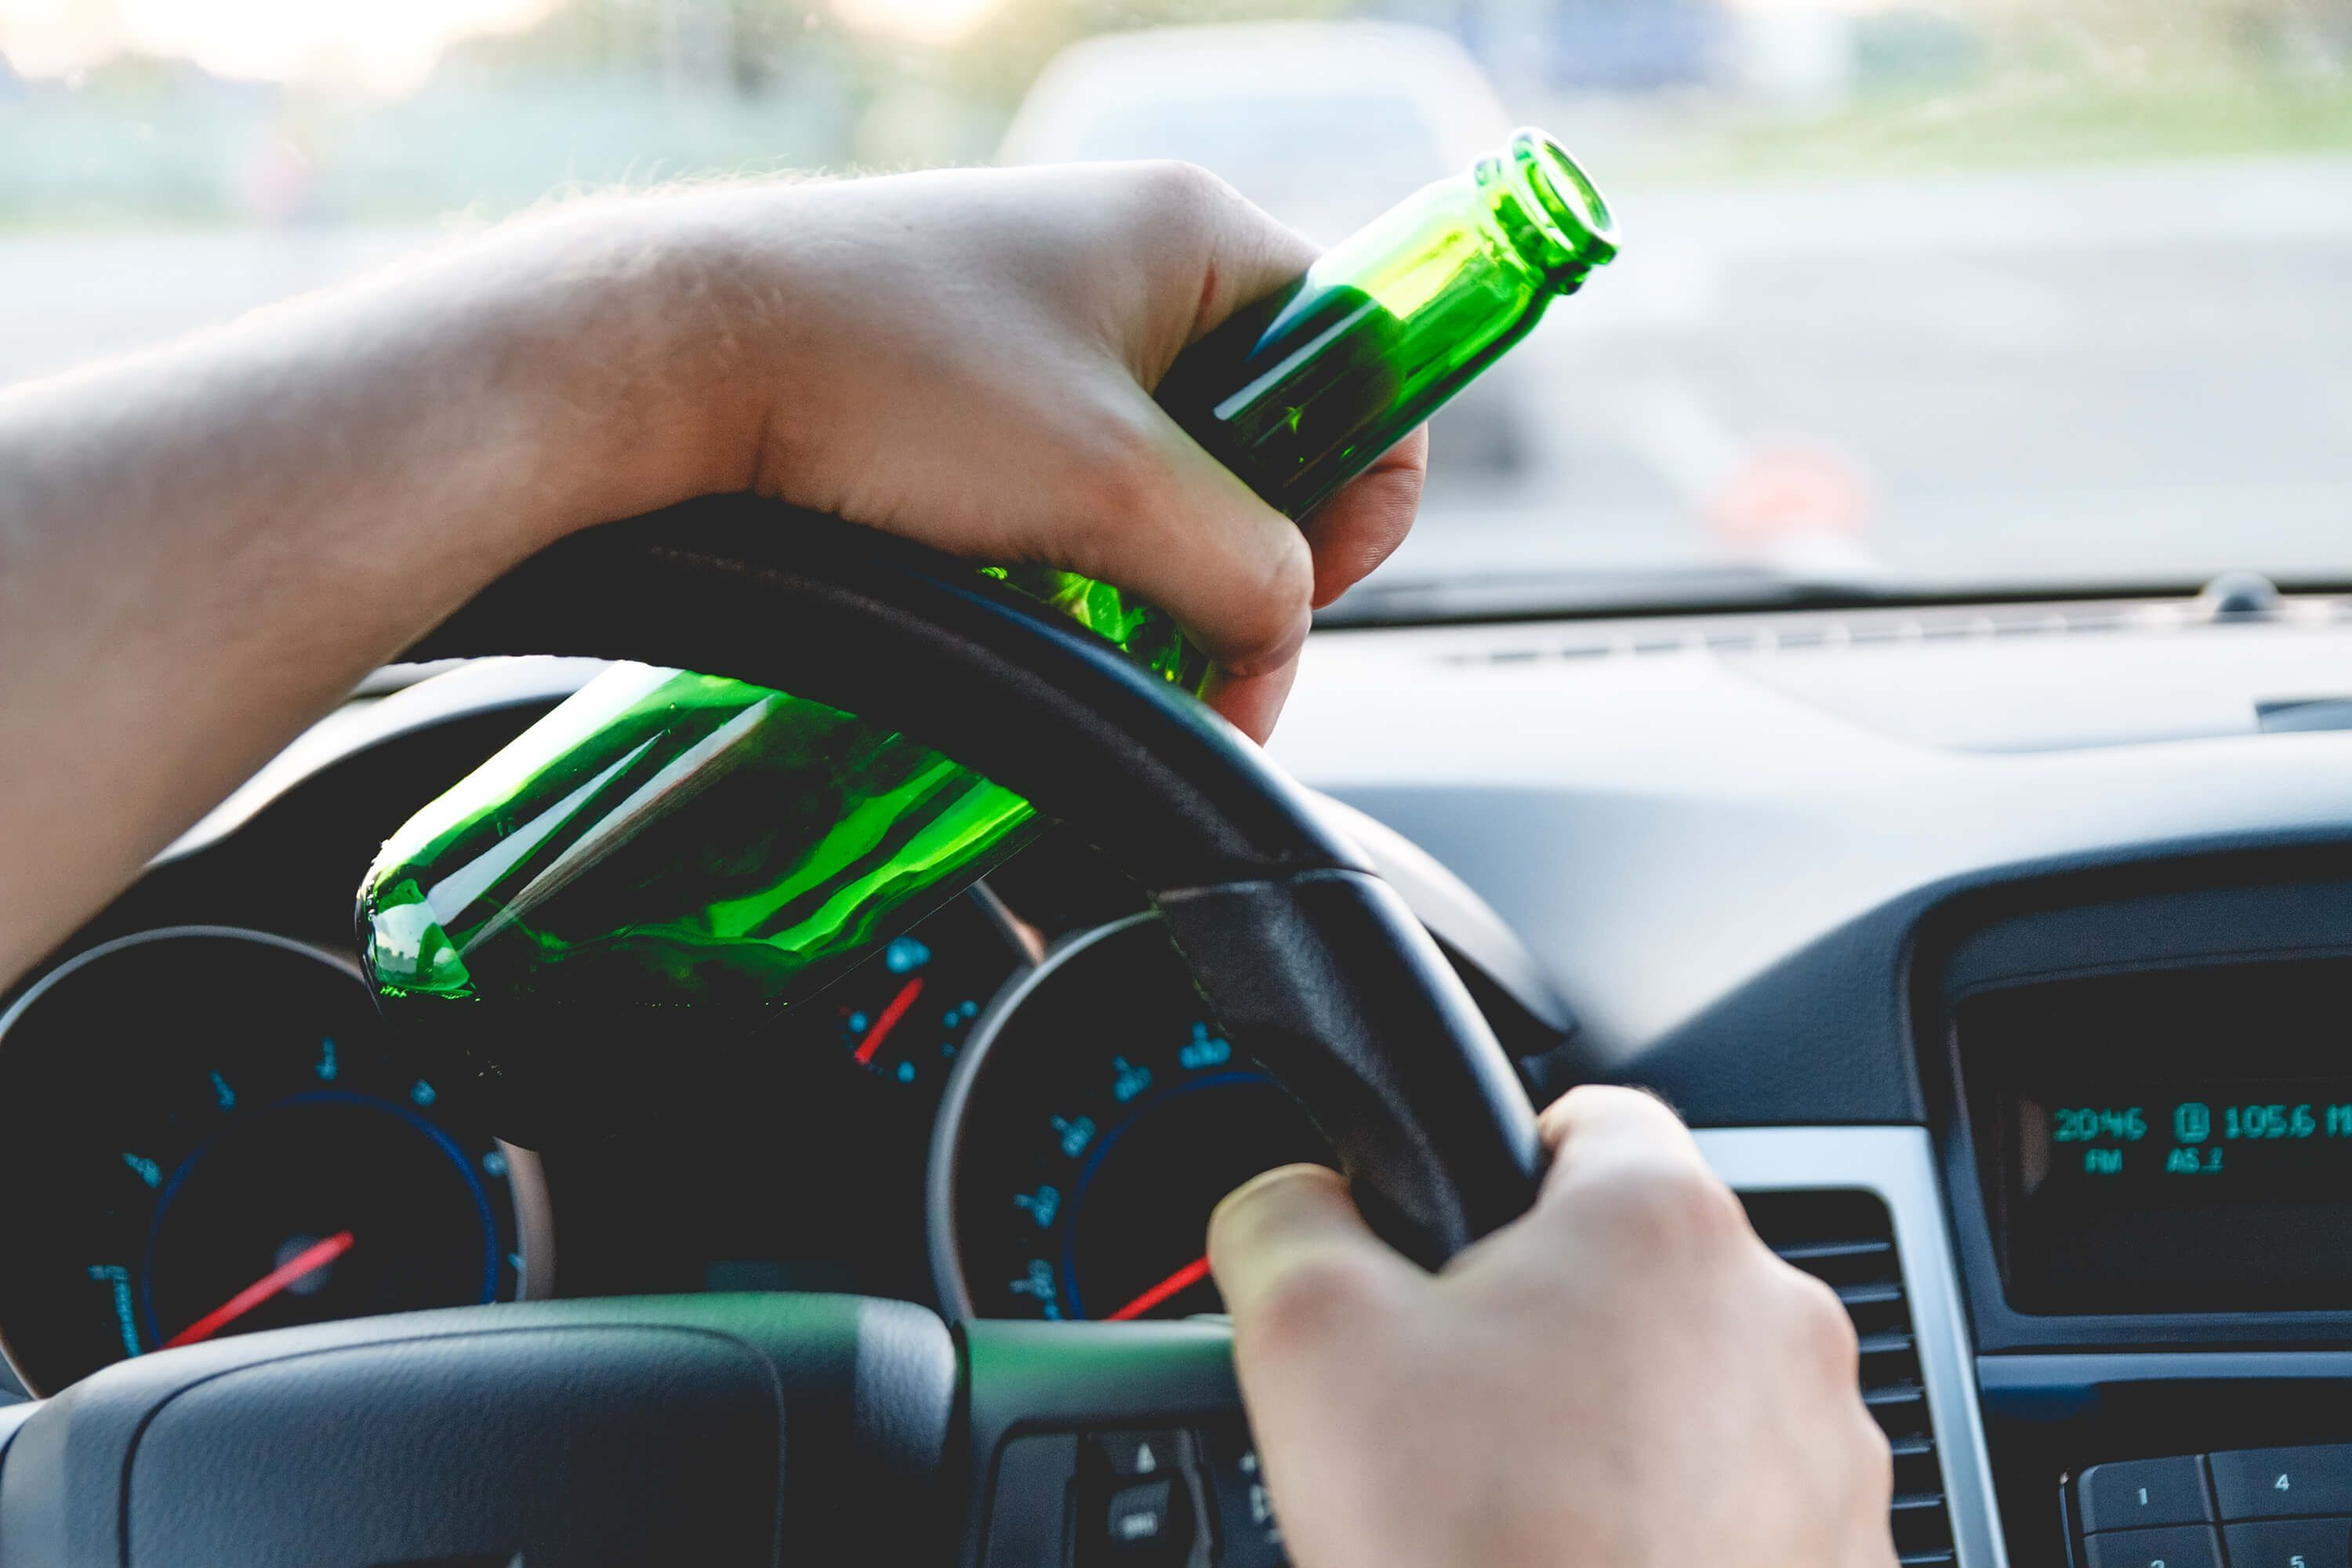 Driving with beer - California zero tolerance law